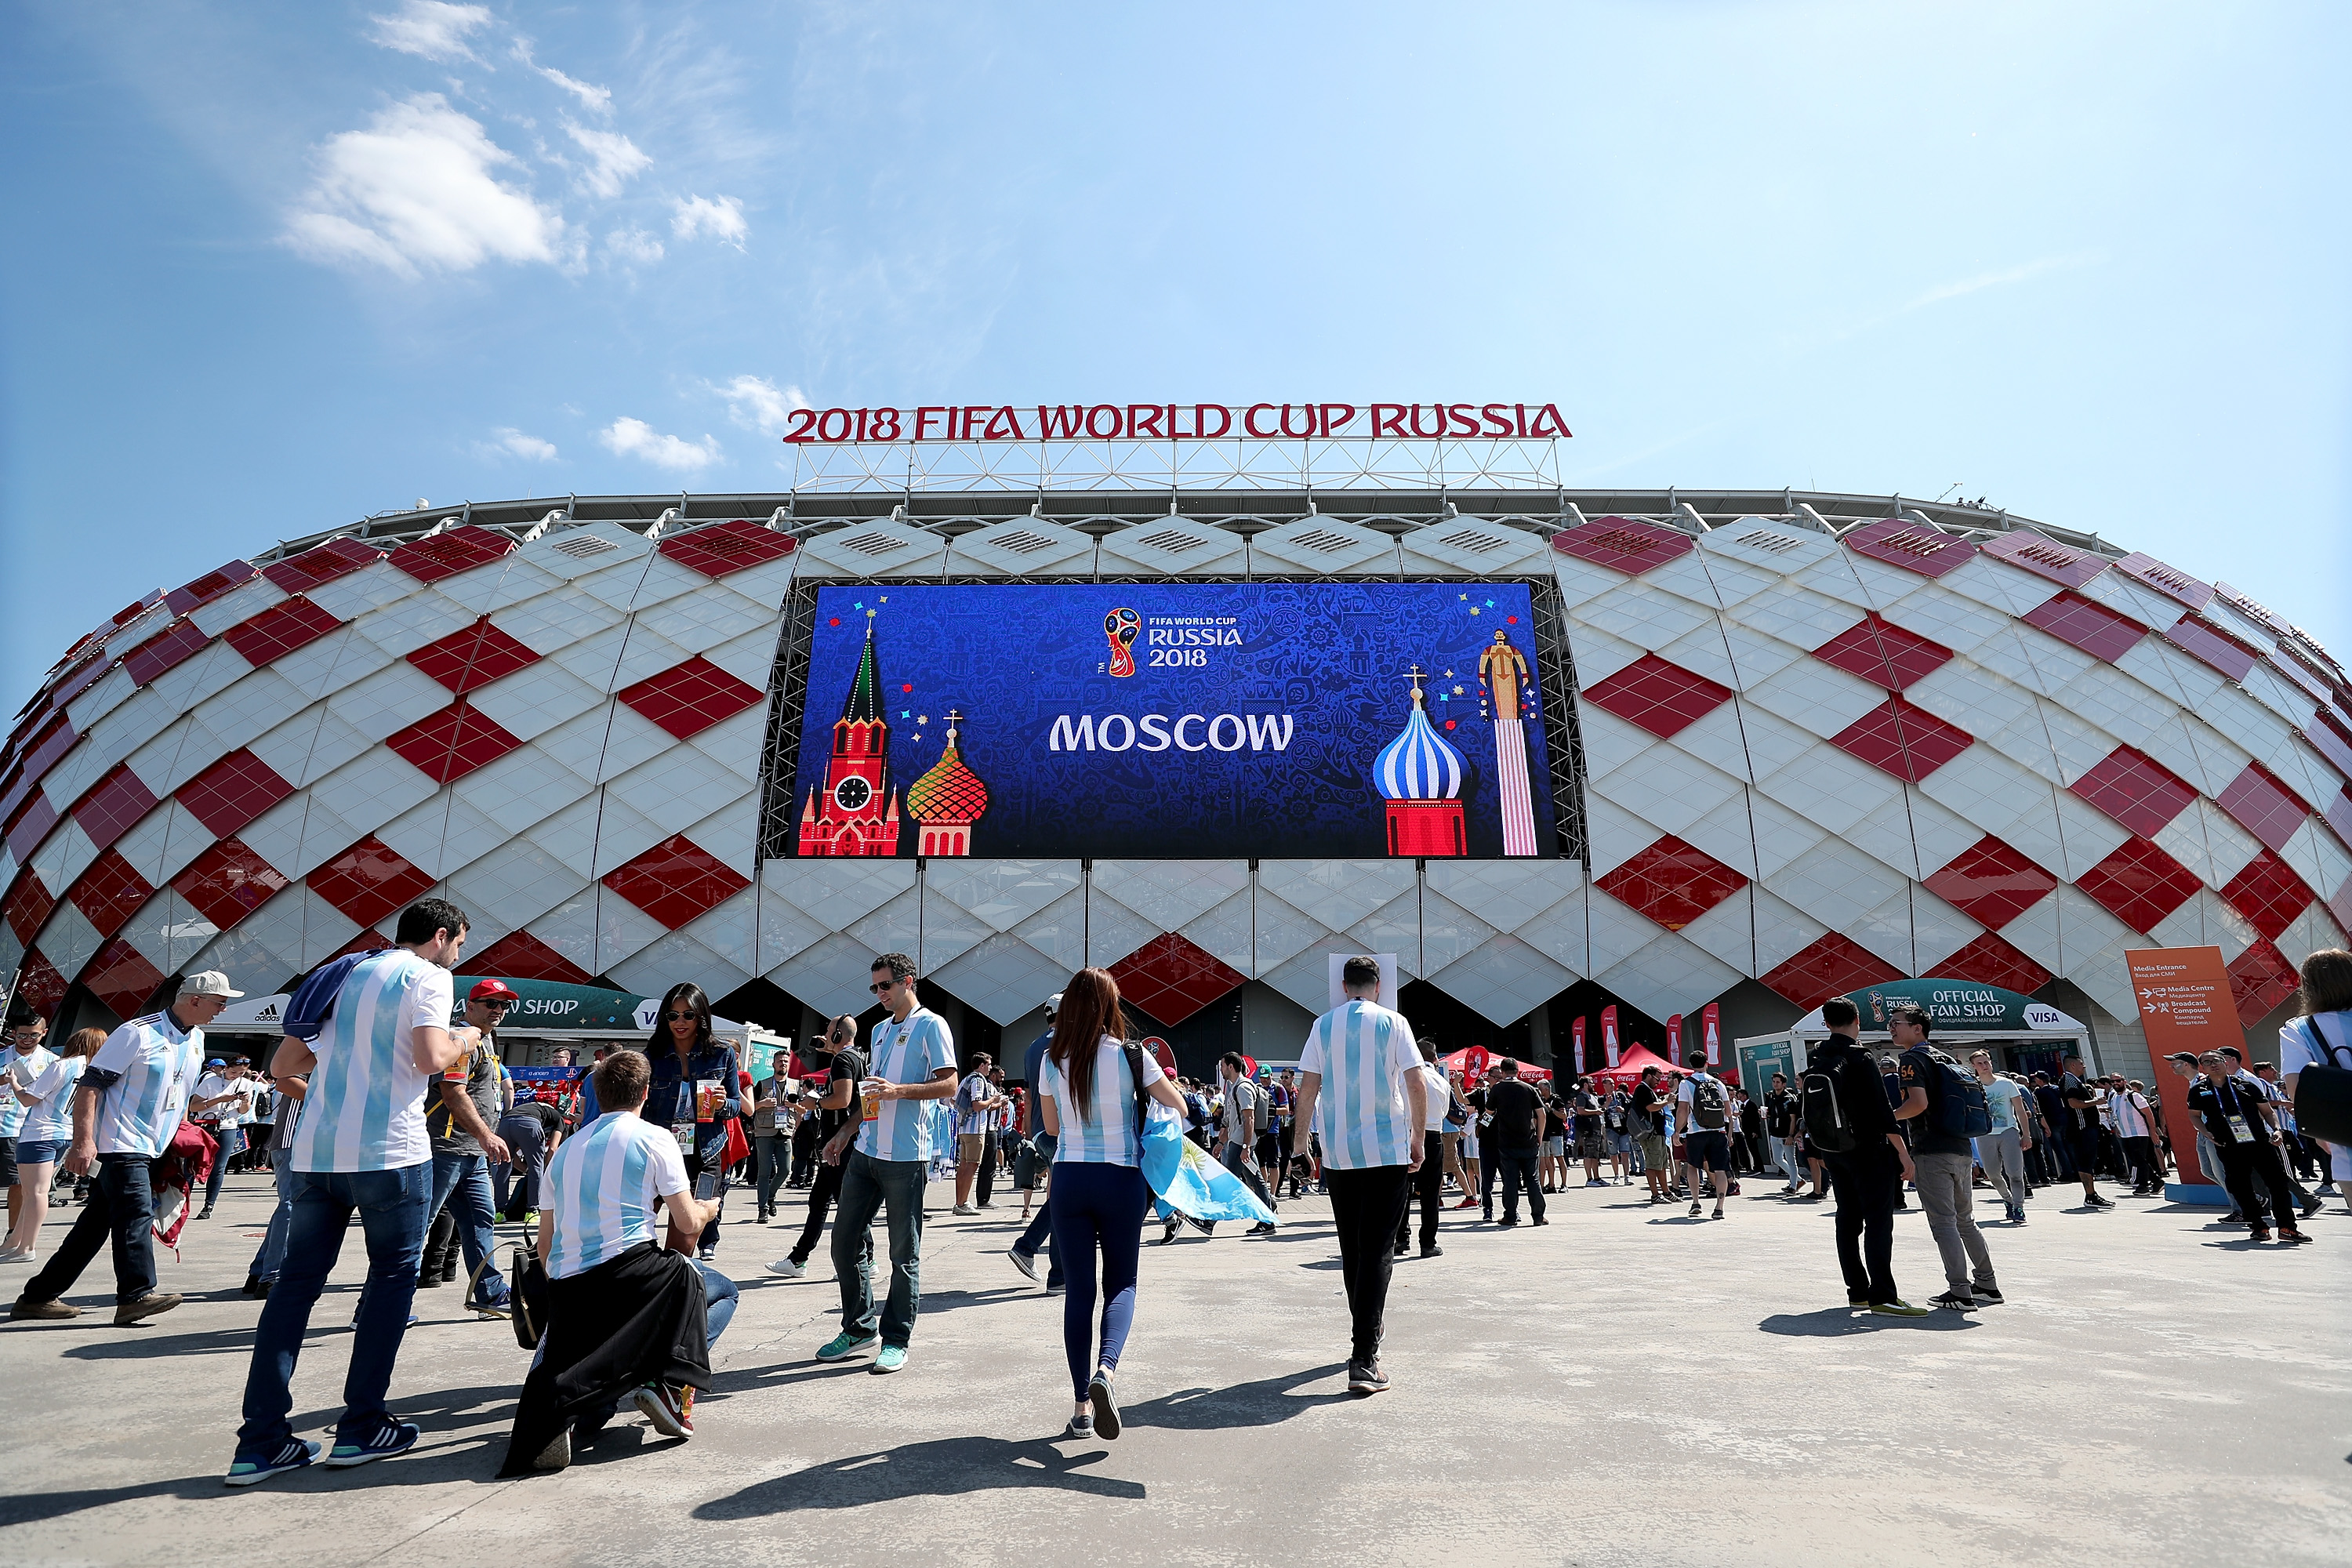 Image from Getty Images / 2018 FIFA World Cup Russia